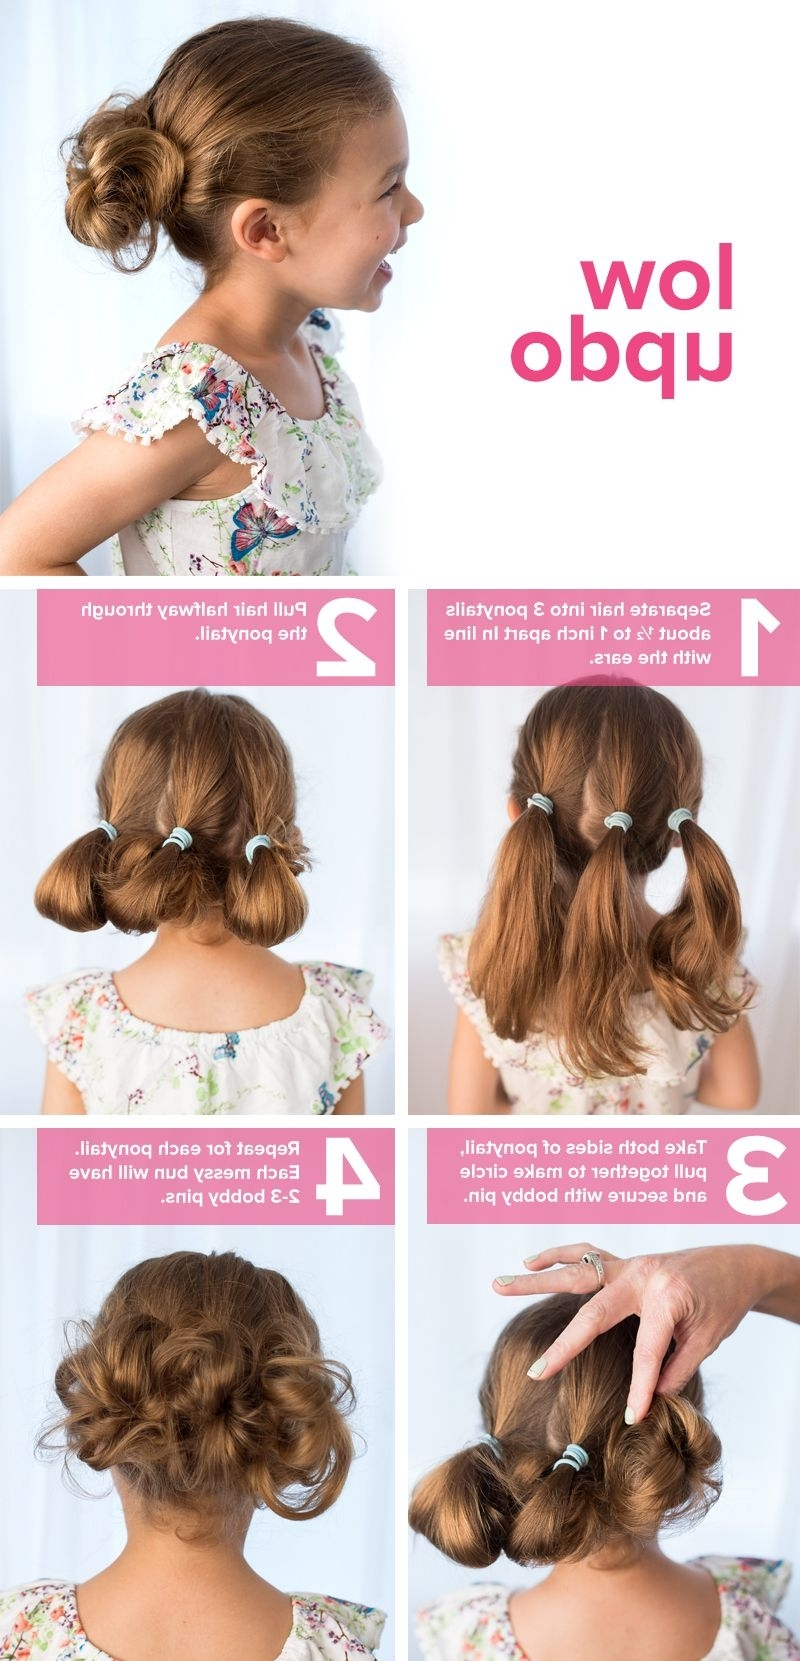 5 Fast, Easy, Cute Hairstyles For Girls | Low Updo, Updo And Kids S Throughout Simple Hair Updo Hairstyles (View 12 of 15)